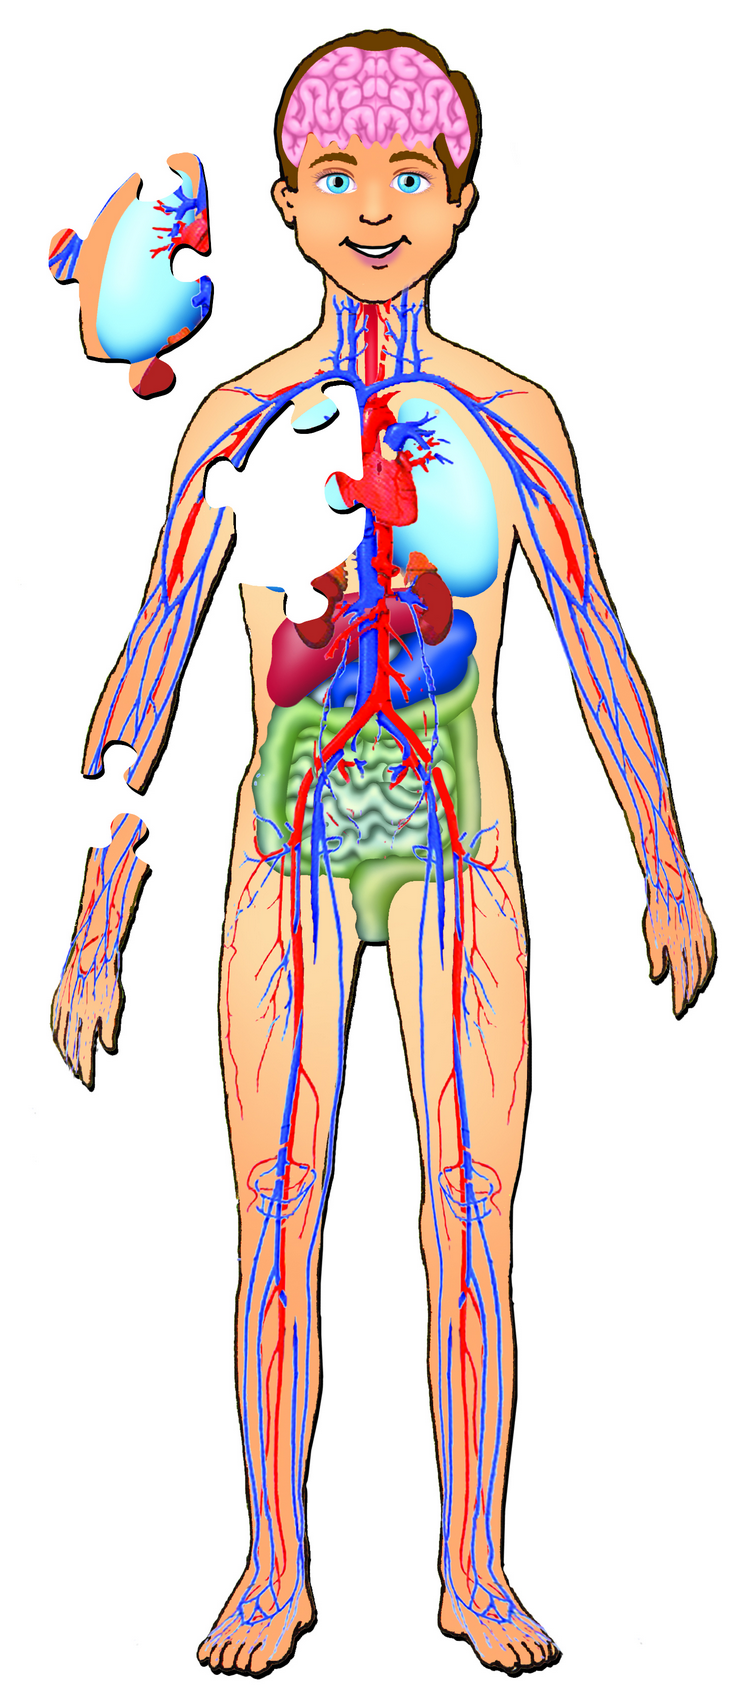 Human Body With Organs Human Body Diagram Human Anatomy Picture Anatomy Images